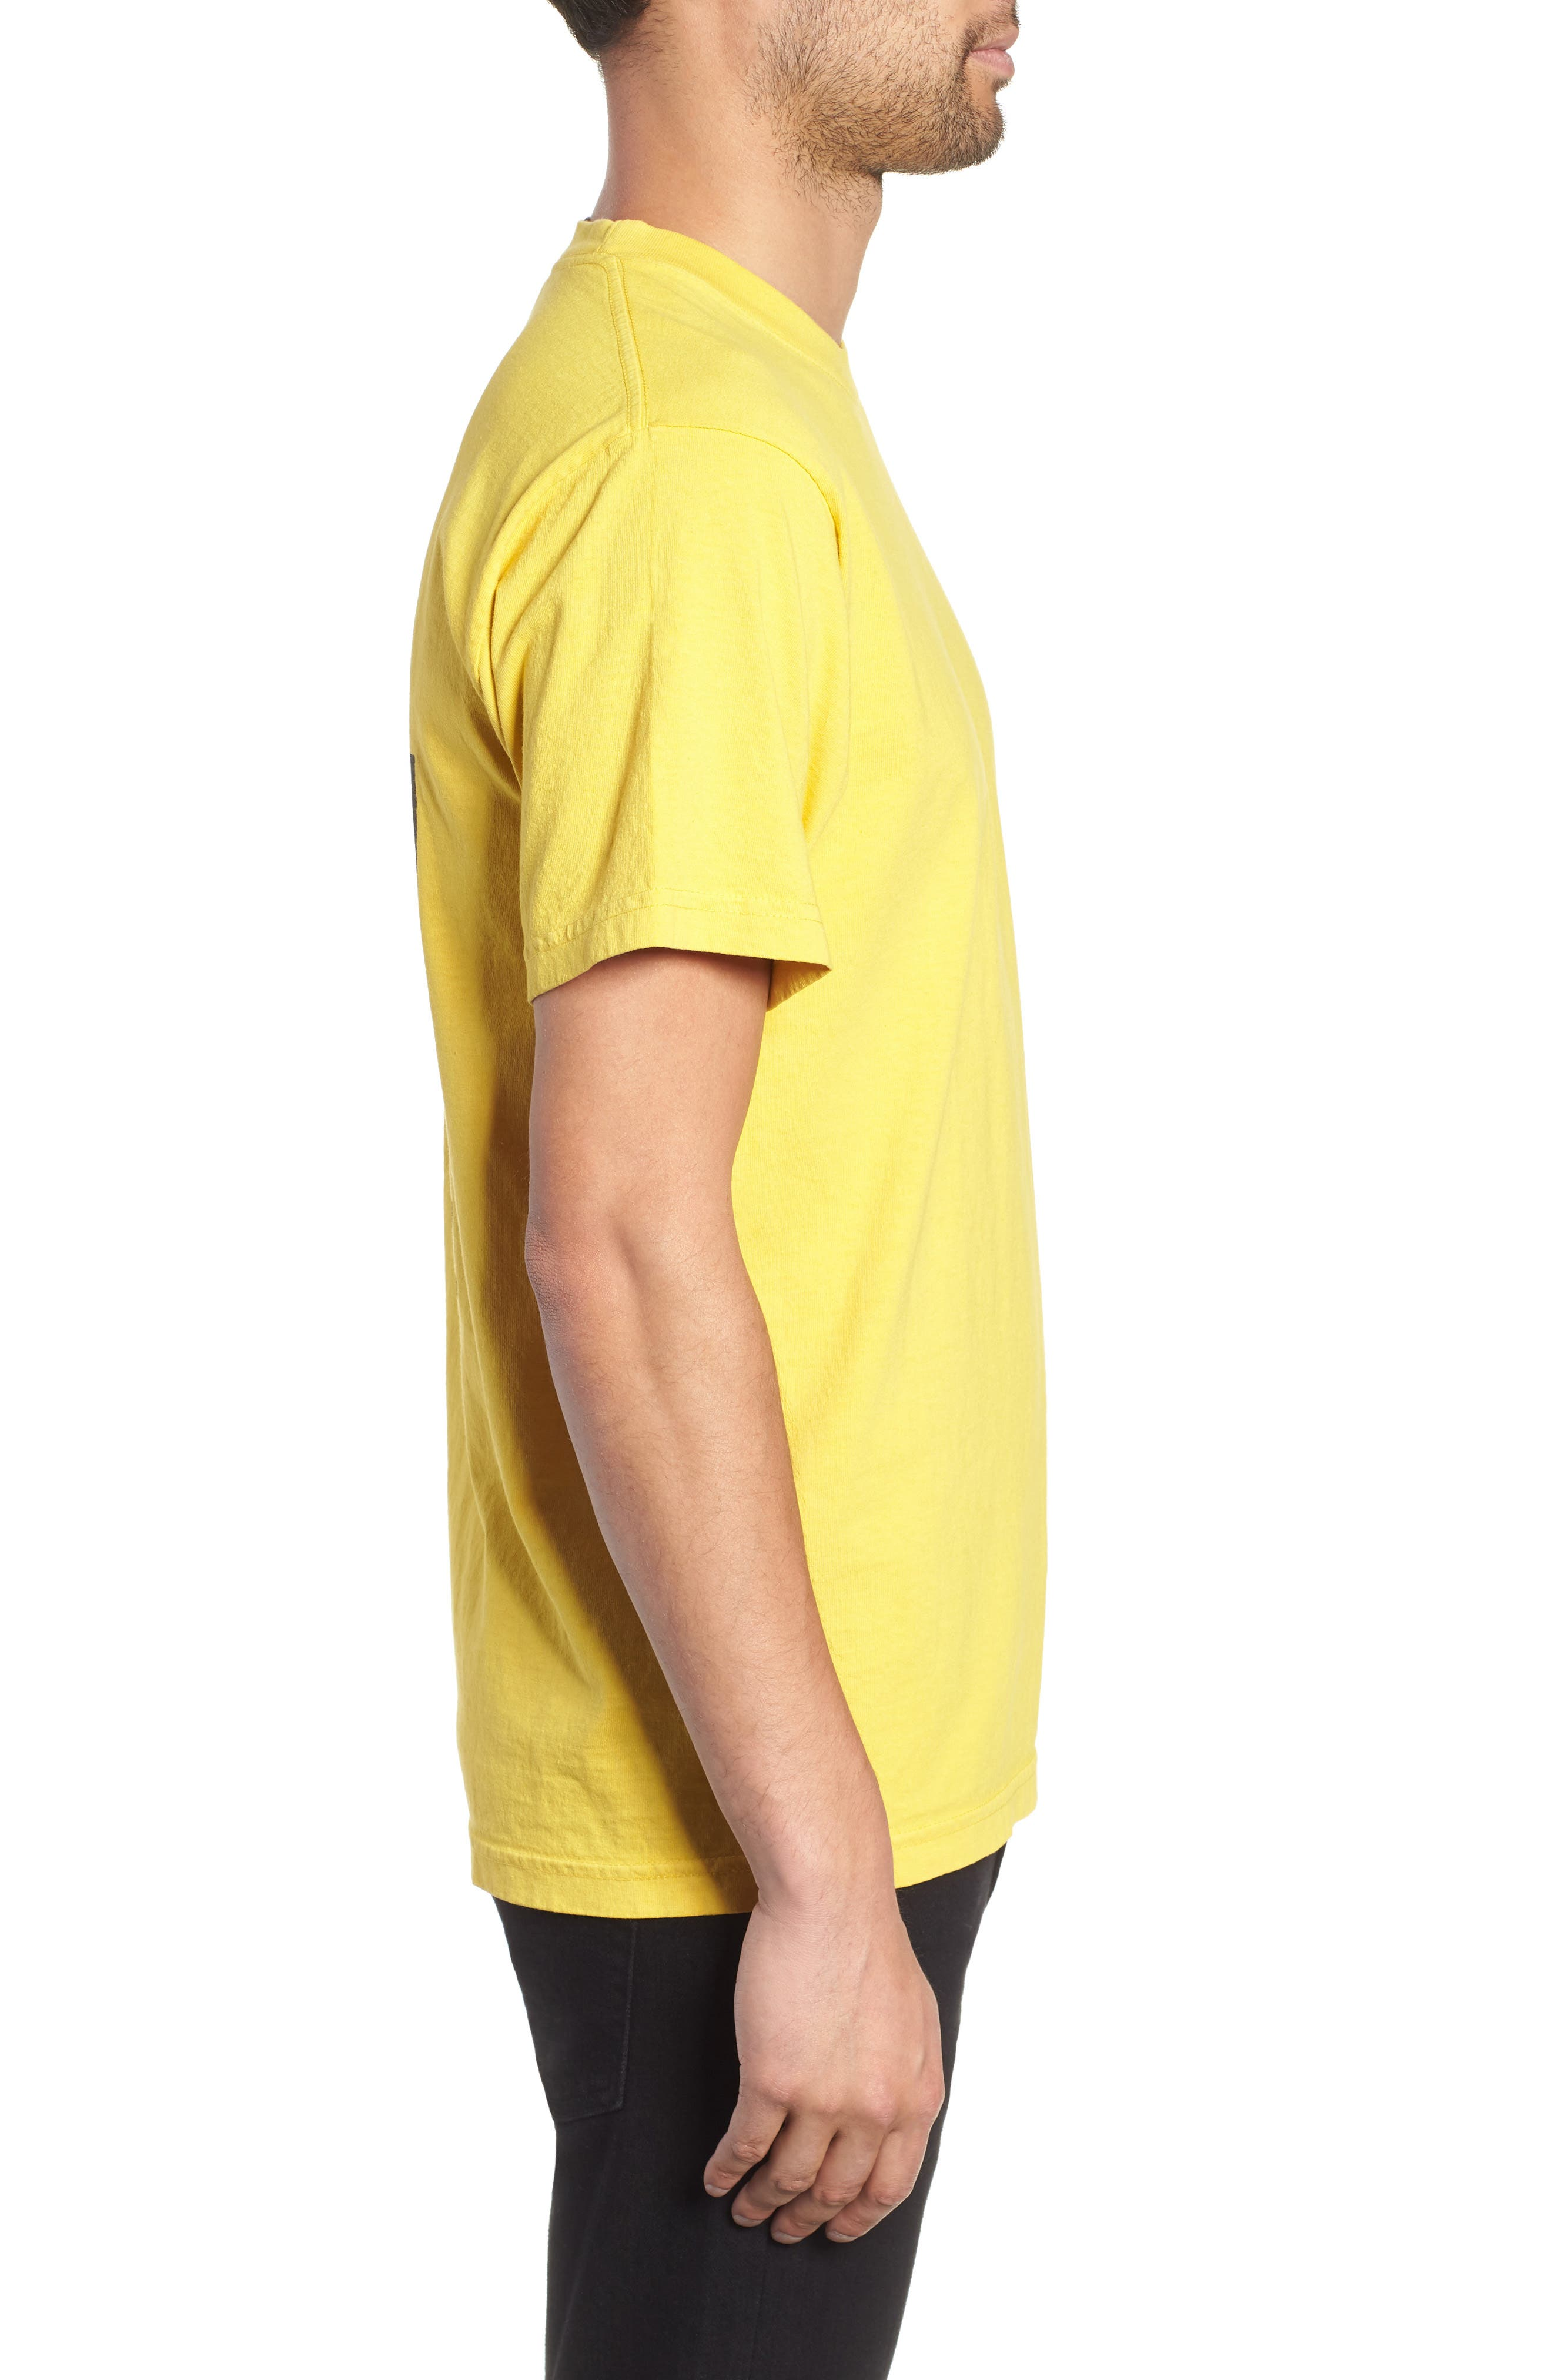 No One Box T-Shirt,                             Alternate thumbnail 3, color,                             SPECTRA YELLOW